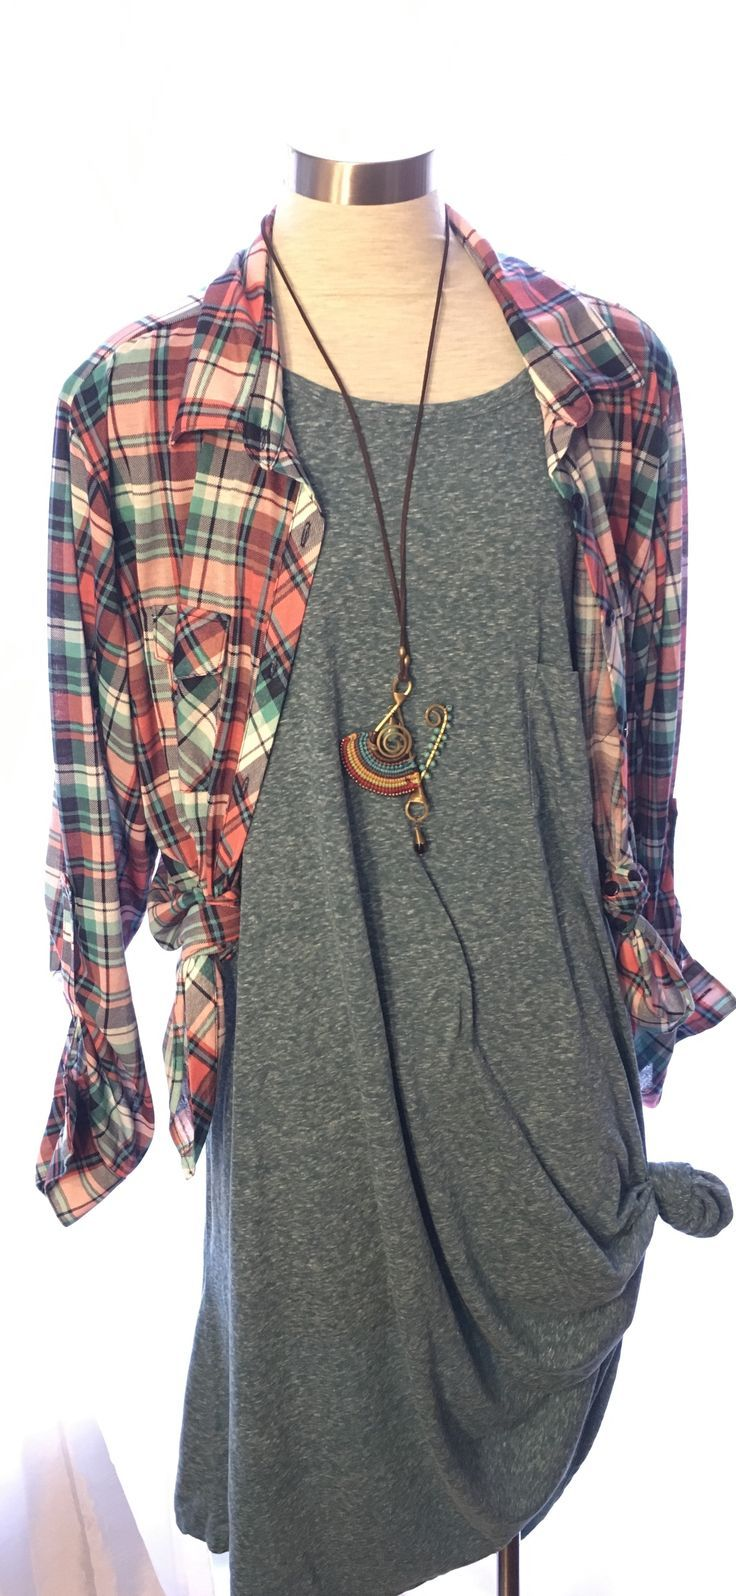 Flannel shirt knot  Carly x Cute plaid shirt Knot just for causal style